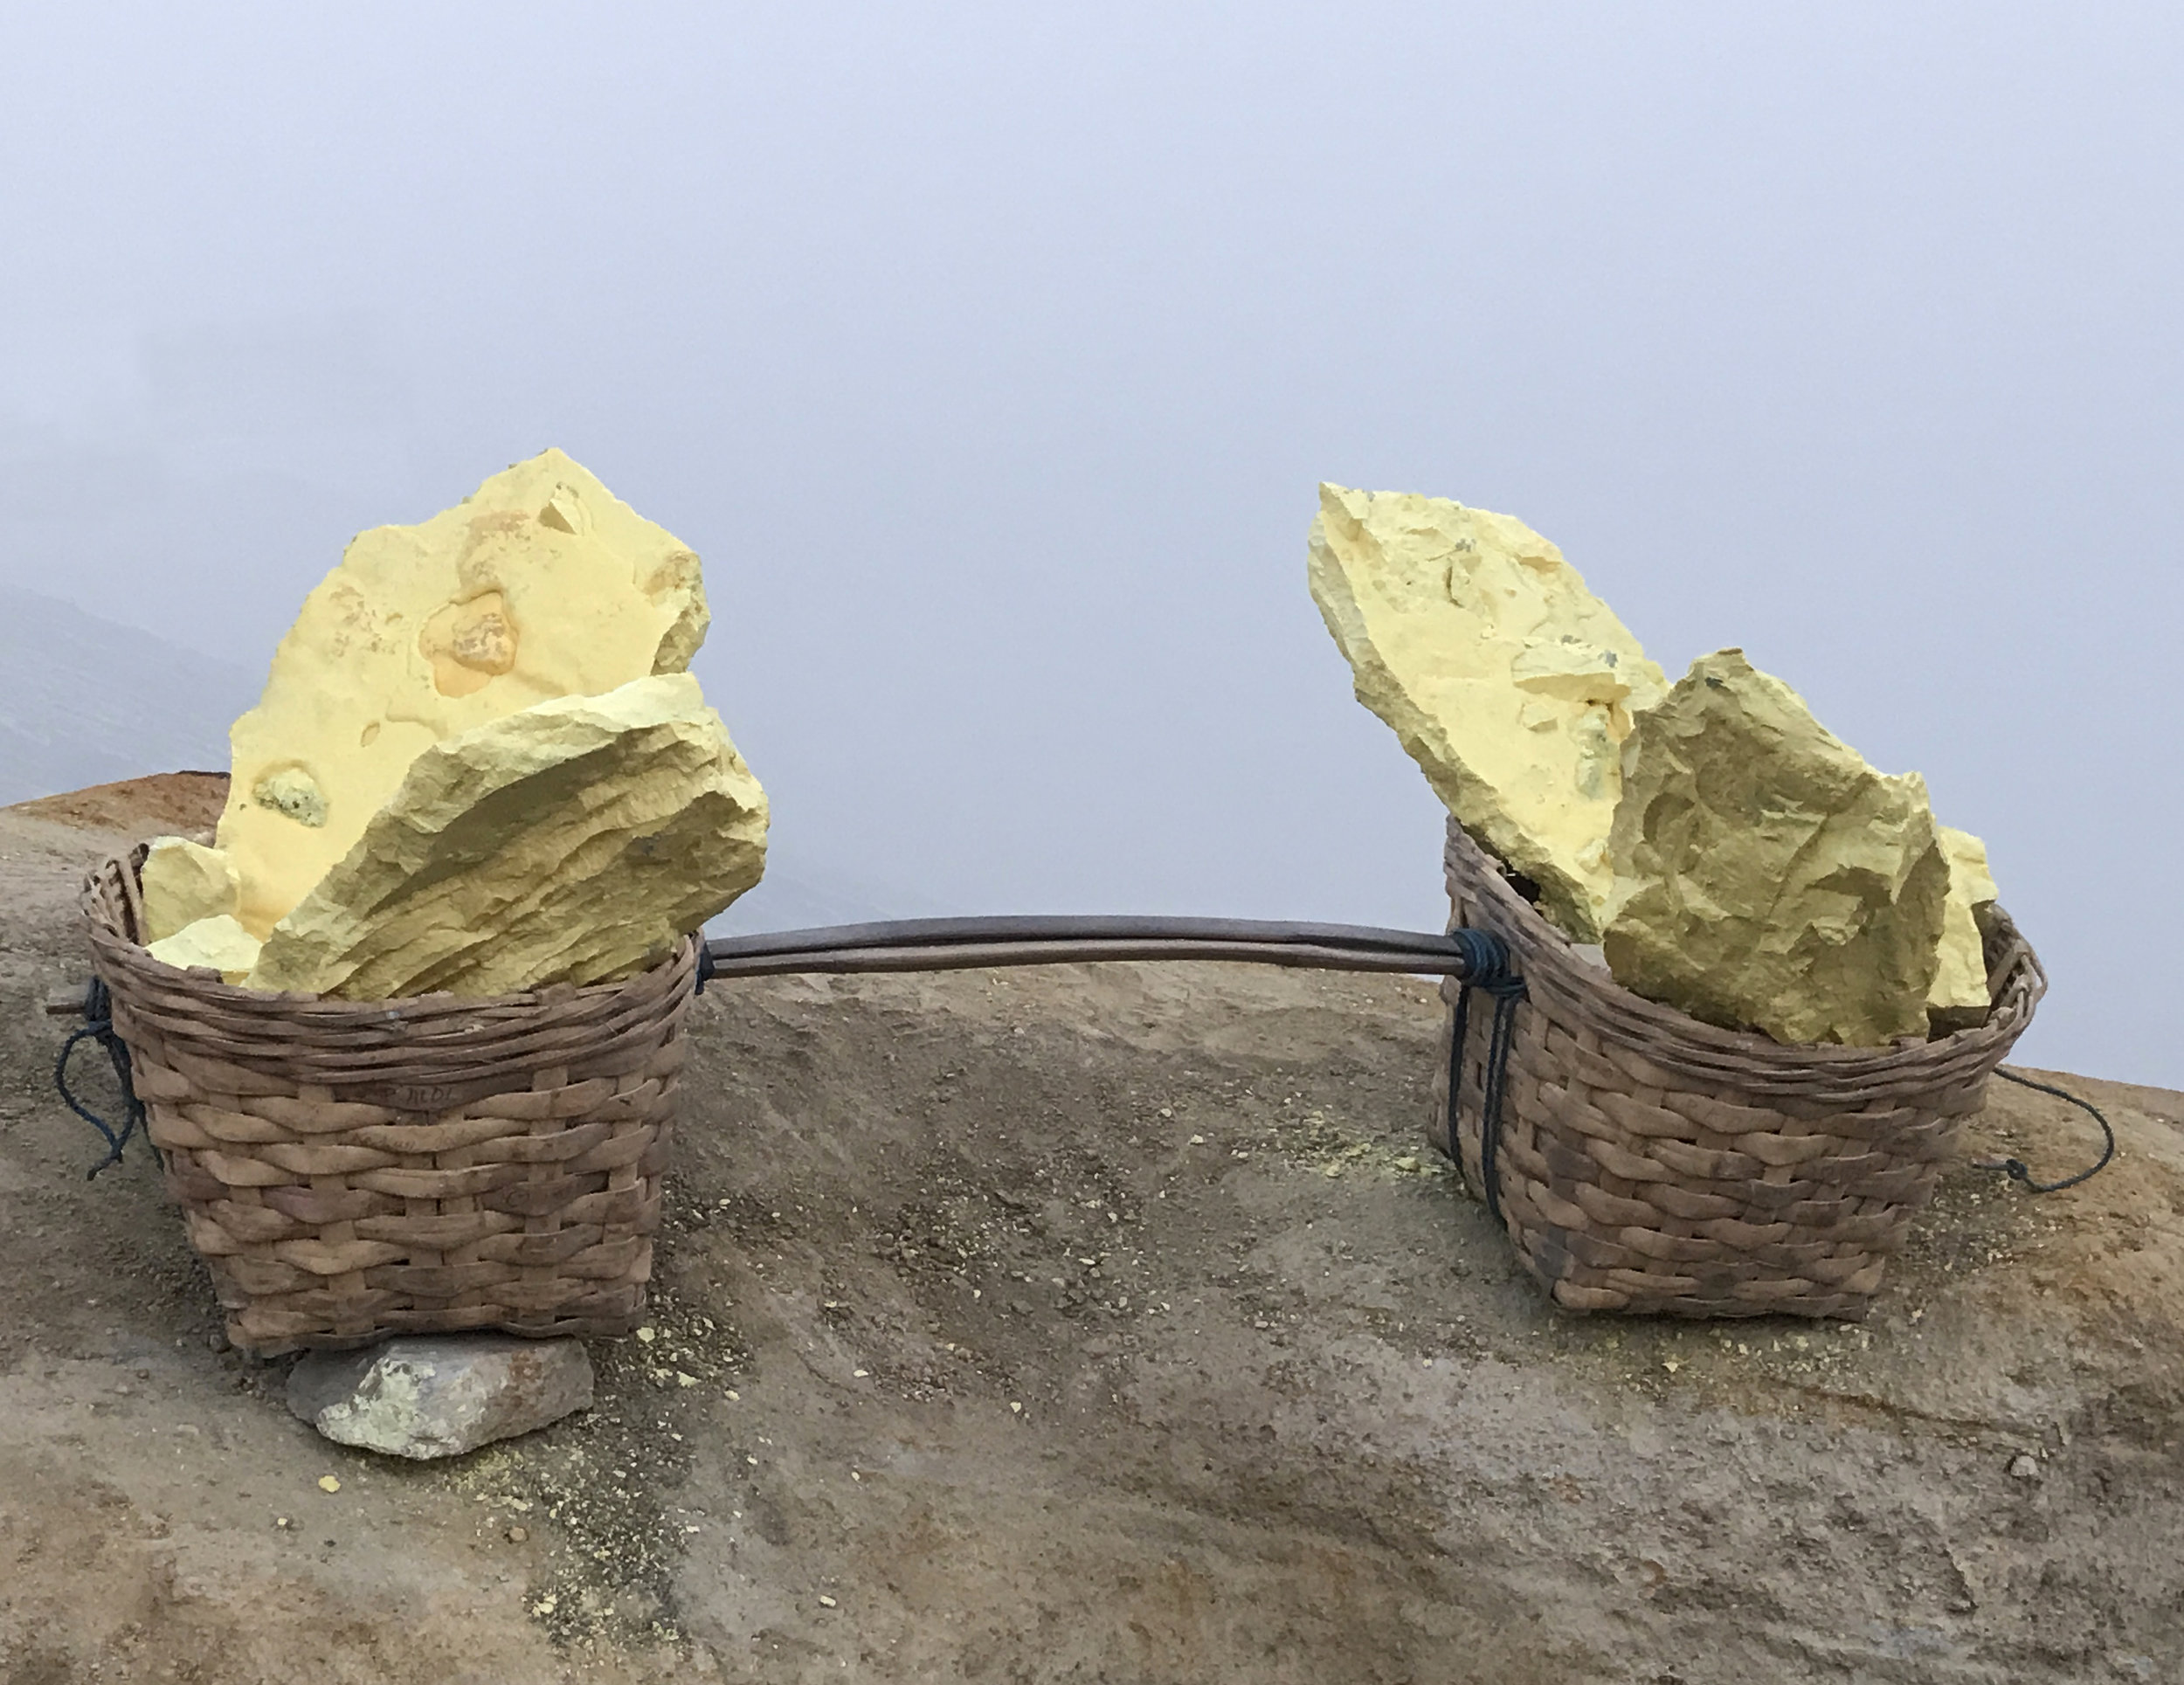 A miner's baskets, full of sulfur.